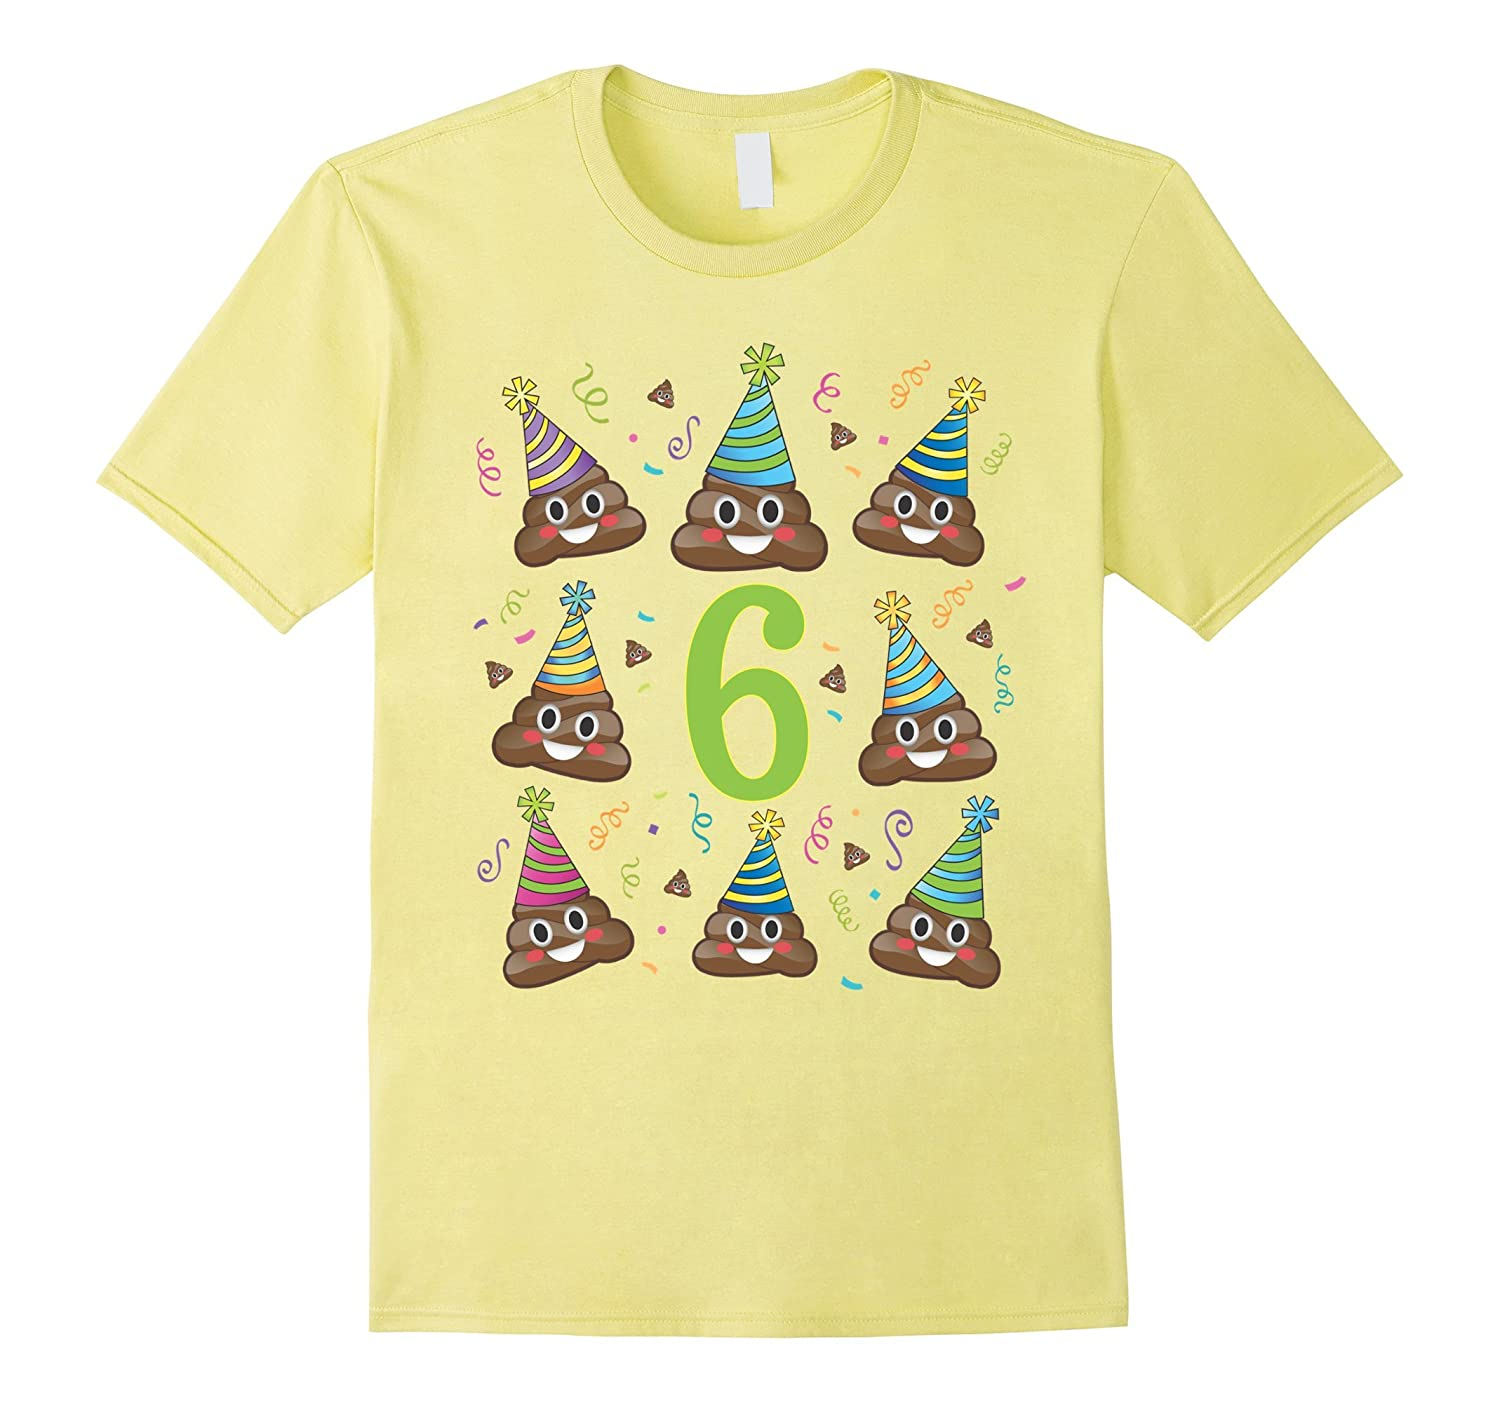 Poop Birthday Shirt Emoji 6 Six Year Old Girl Boy Poo 6th TH